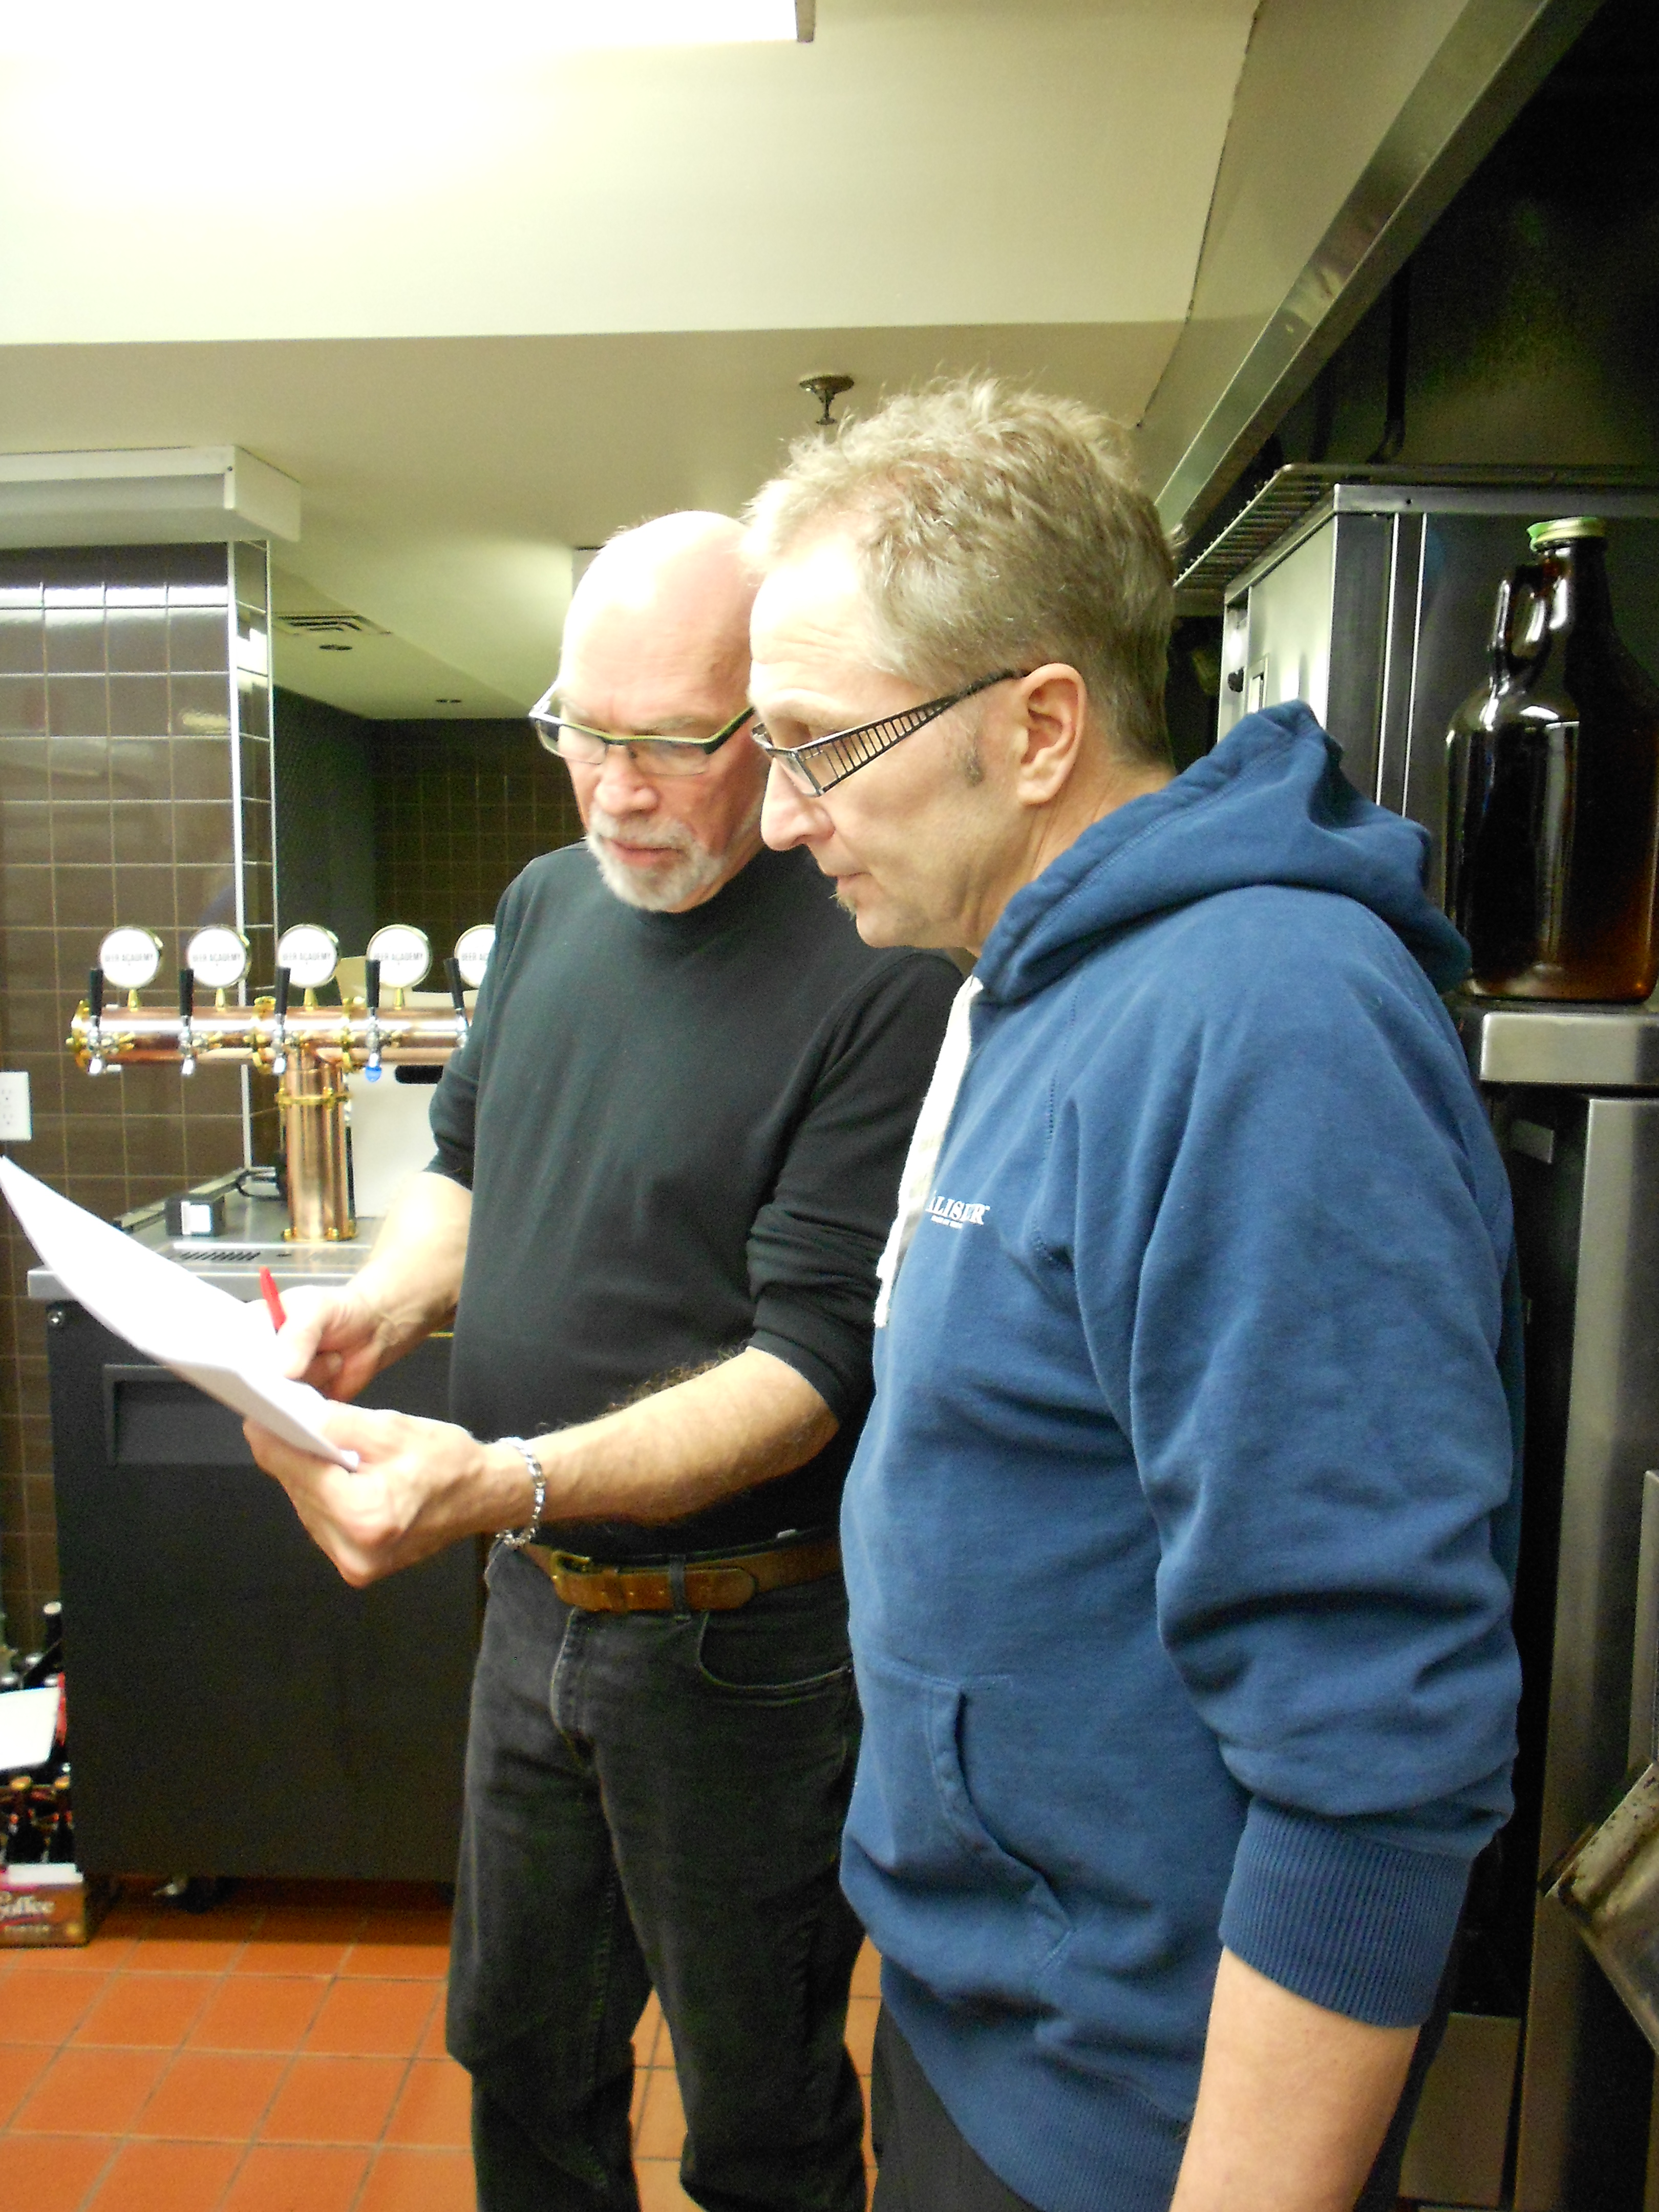 Paul Dickey (right) and Roger Mittag (left) discuss which table to send a flight of beers to.